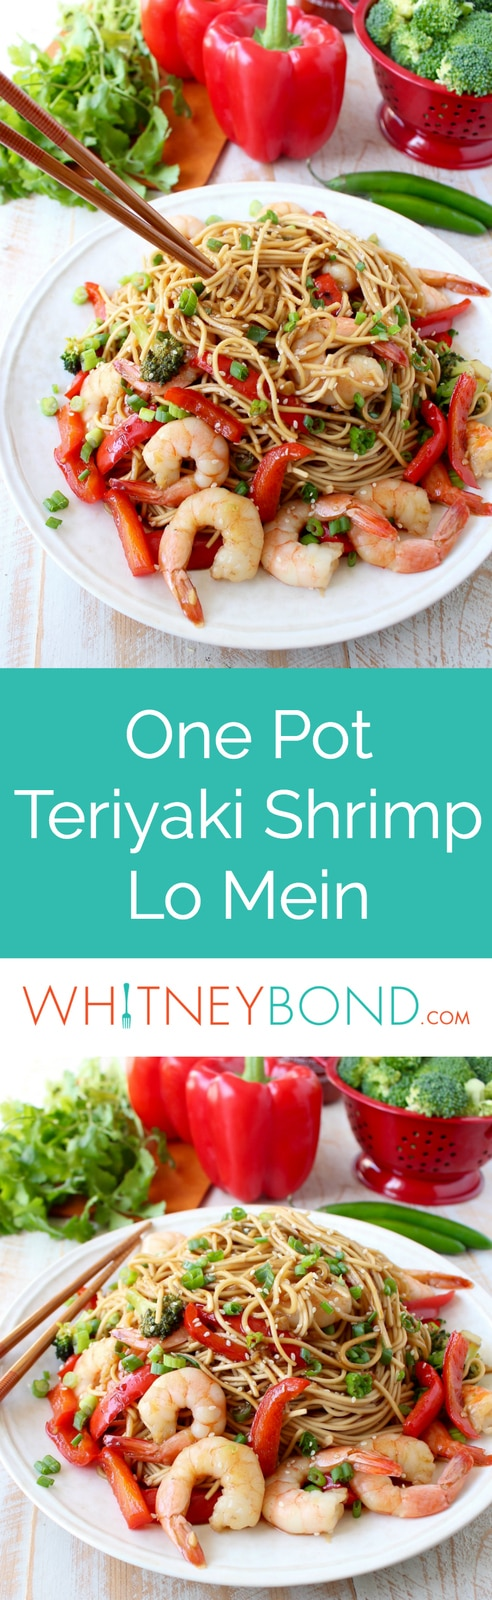 Teriyaki shrimp, fresh veggies and lo mein noodles are combined in this easy one pot recipe, made in under 30 minutes, perfect for weeknight dinners!